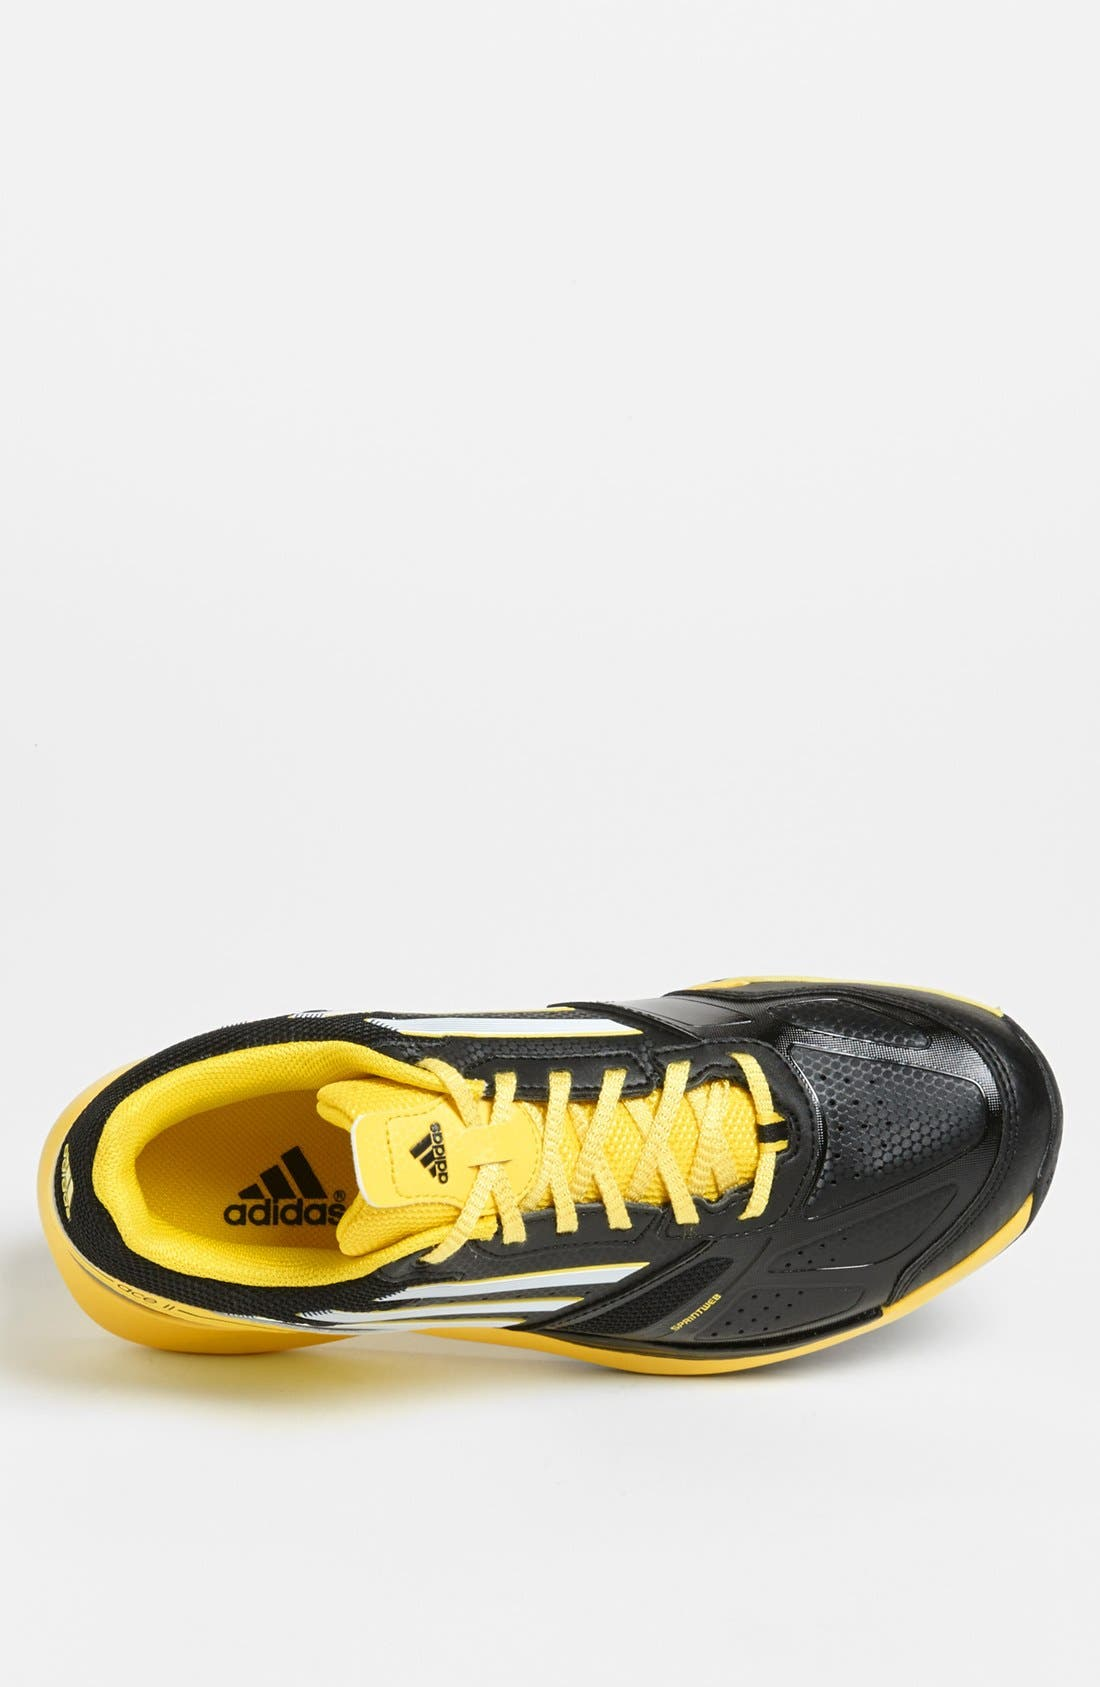 Alternate Image 3  - adidas 'adiZero Ace II' Tennis Shoe (Men)